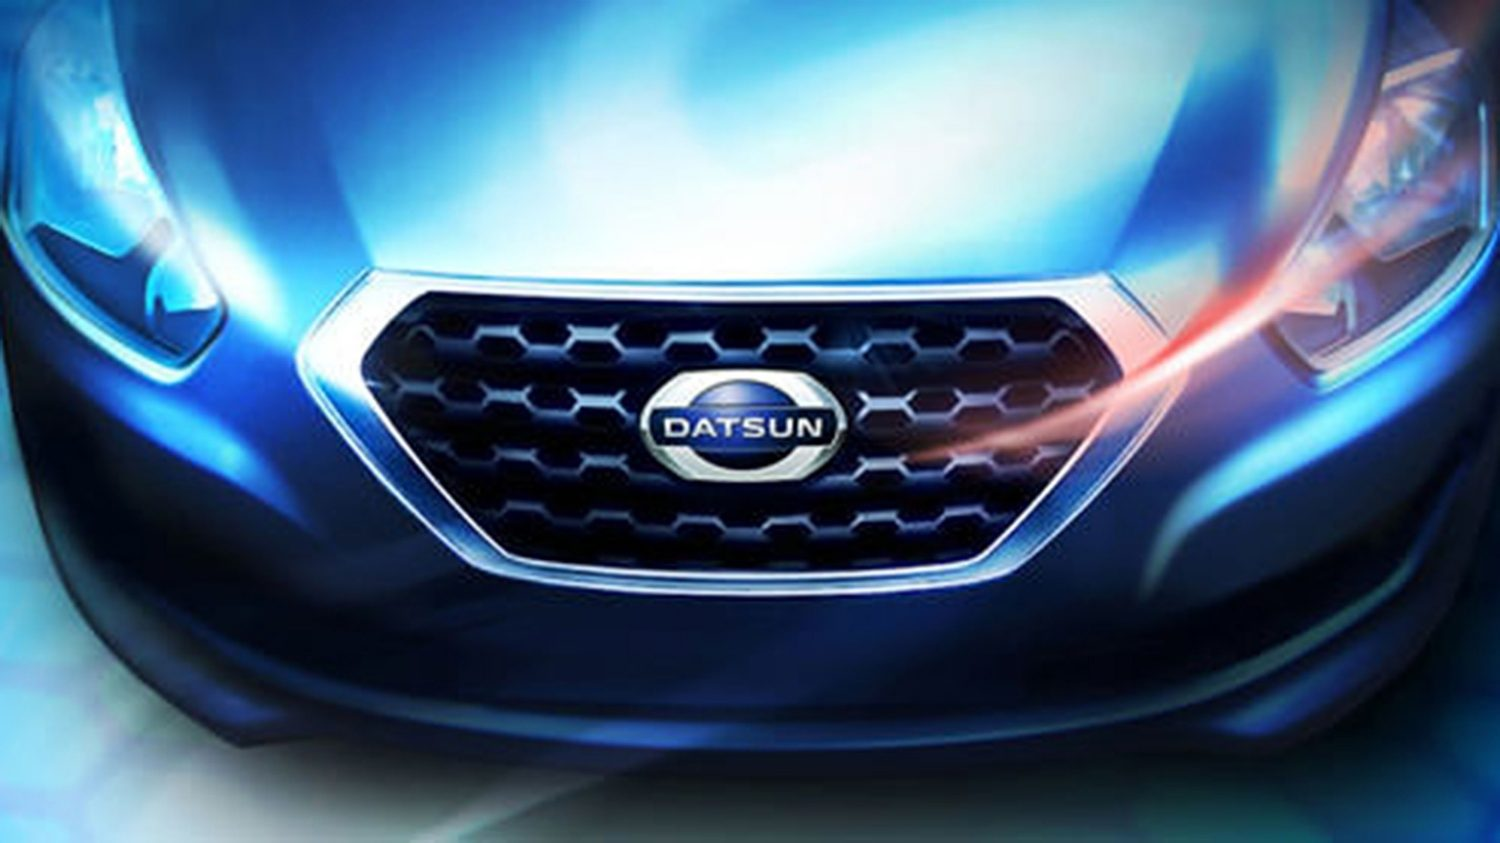 Official Datsun Global Affordable Cars Sedans Hatchbacks And Resistorcalculatorfreeledcalculadora Xtronic Free Electronic About